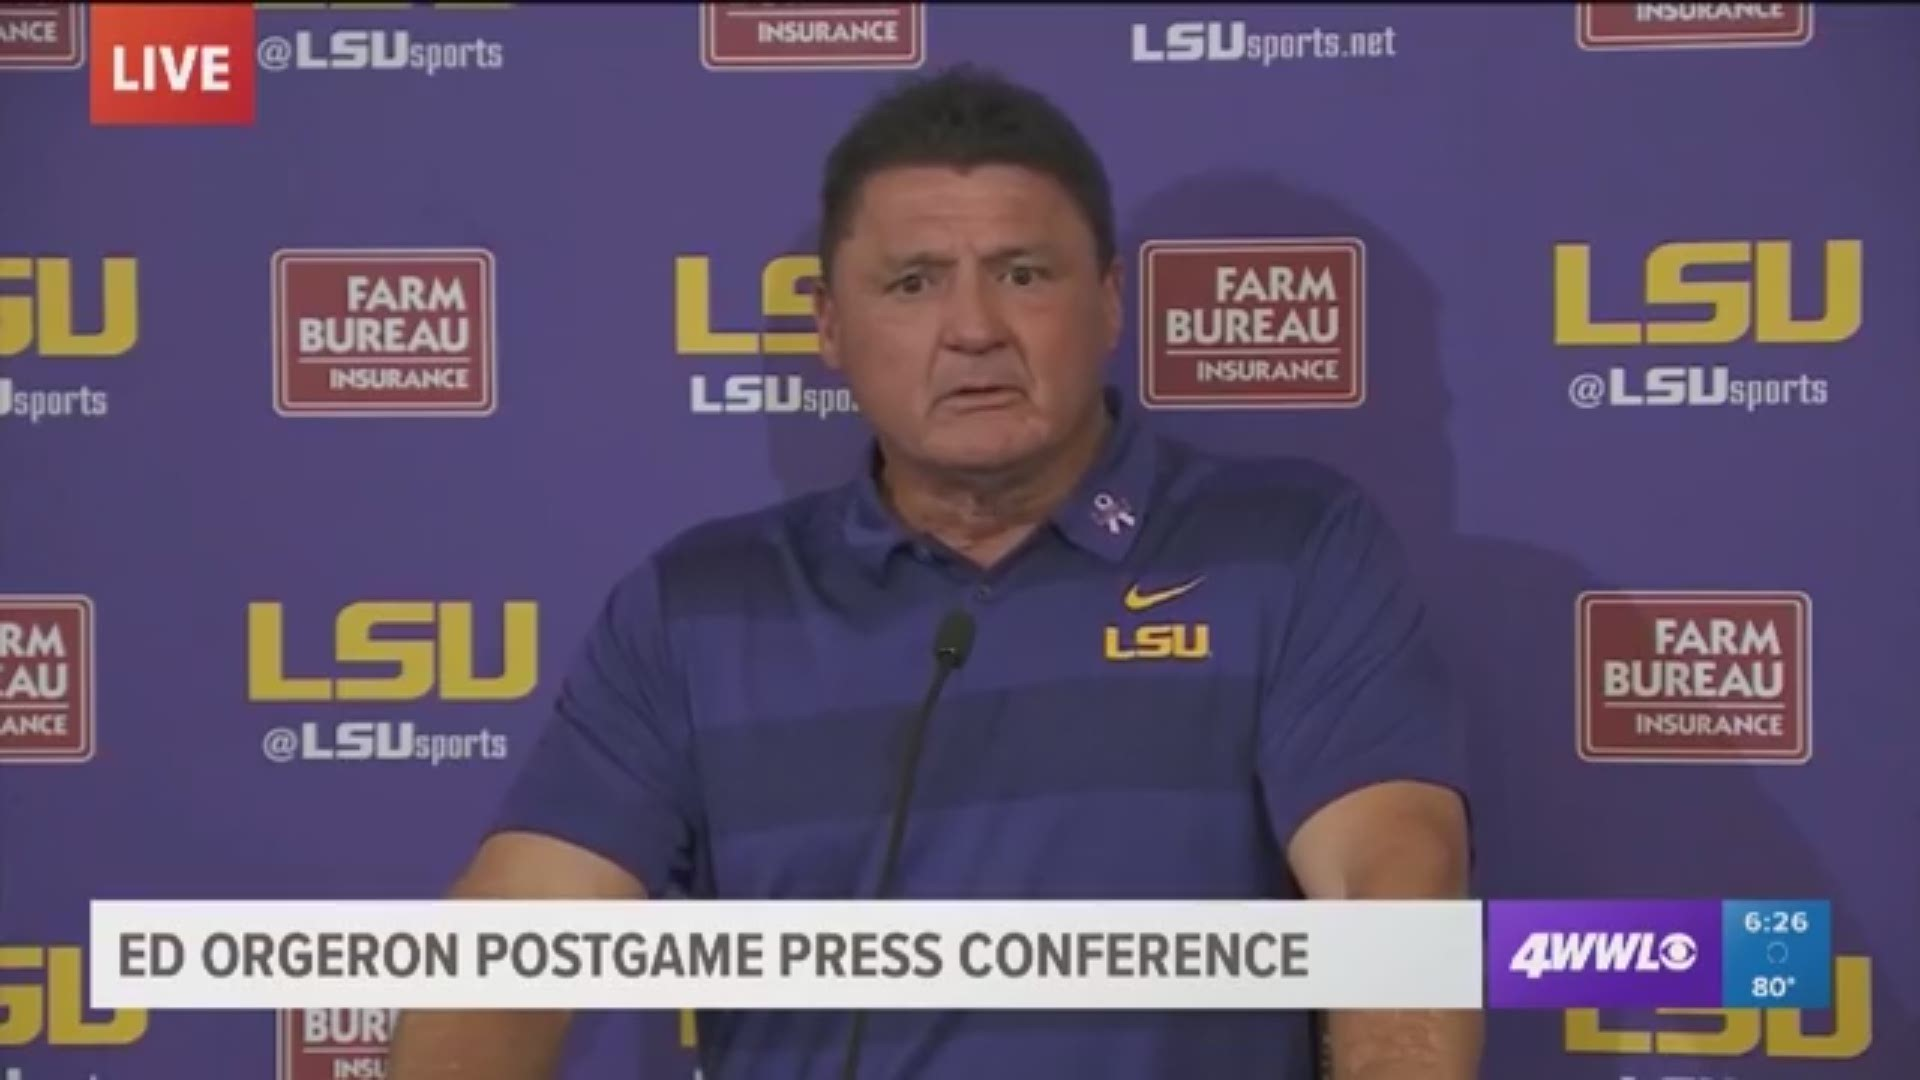 Will Lsu Use Terrible Thursday Practices Considering How Things Went Saturday Wwltv Com